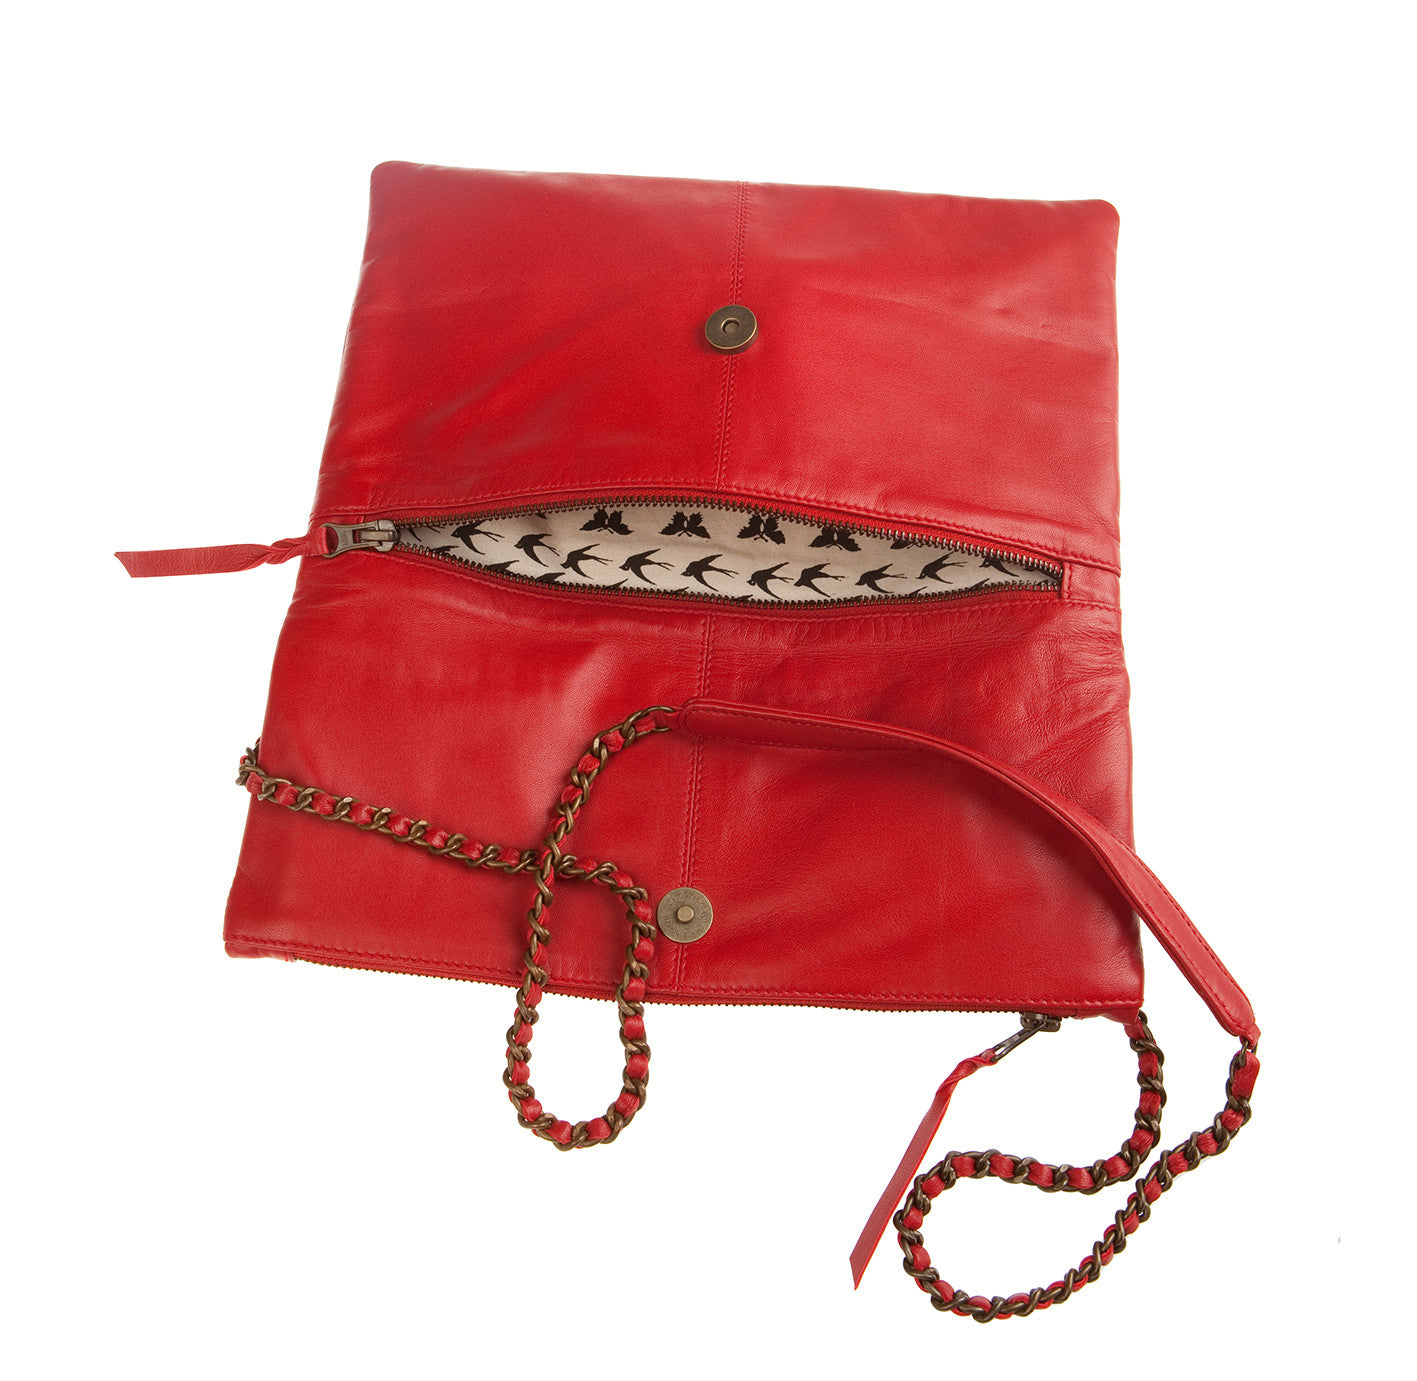 Italian Leather Red Foldover Bag